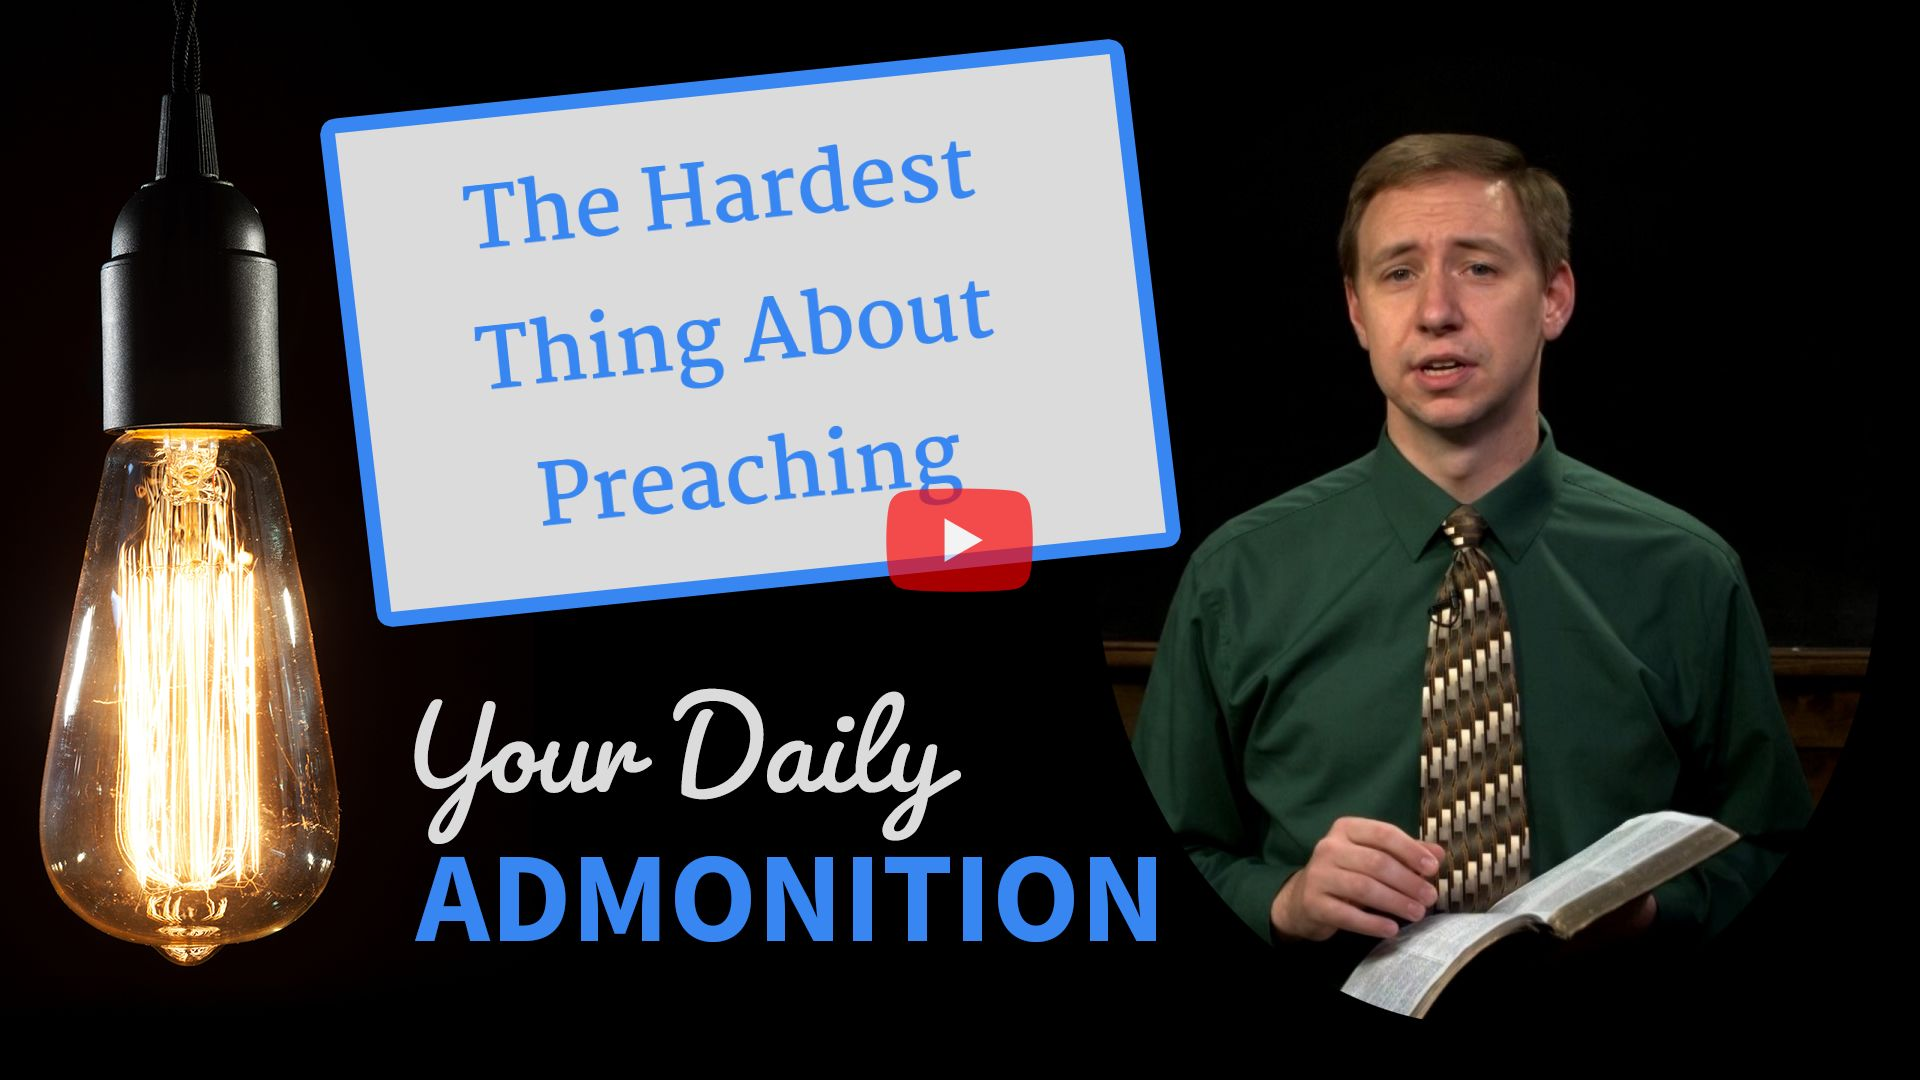 The Hardest Thing About Preaching